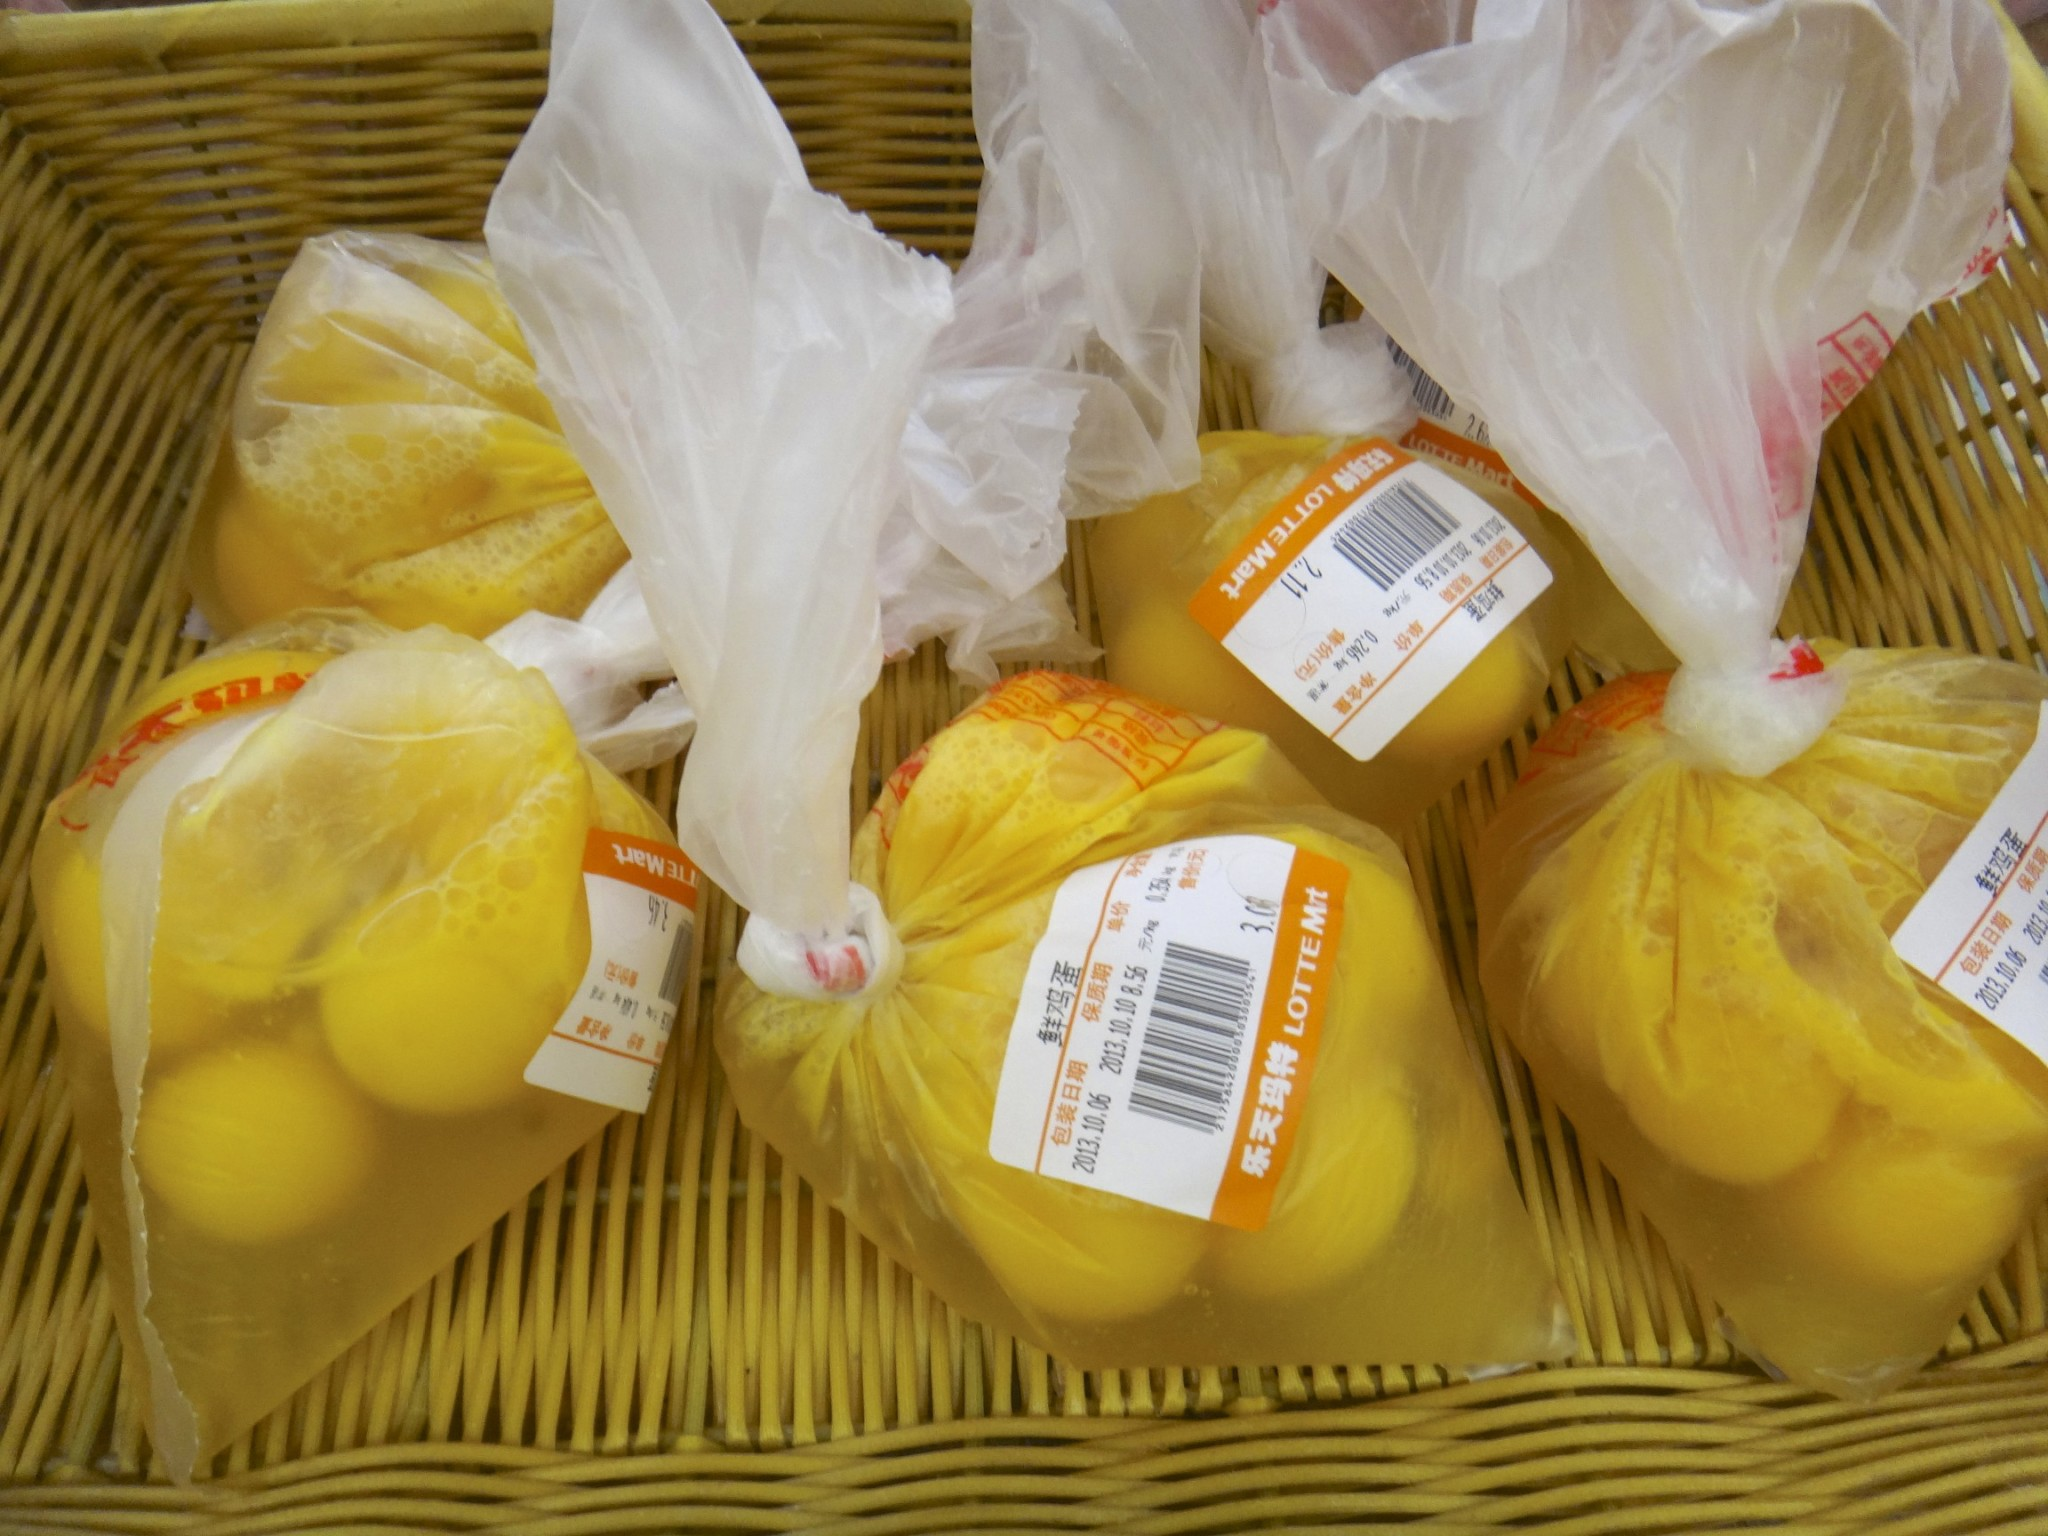 China Groceries: Raw Eggs in a Bag